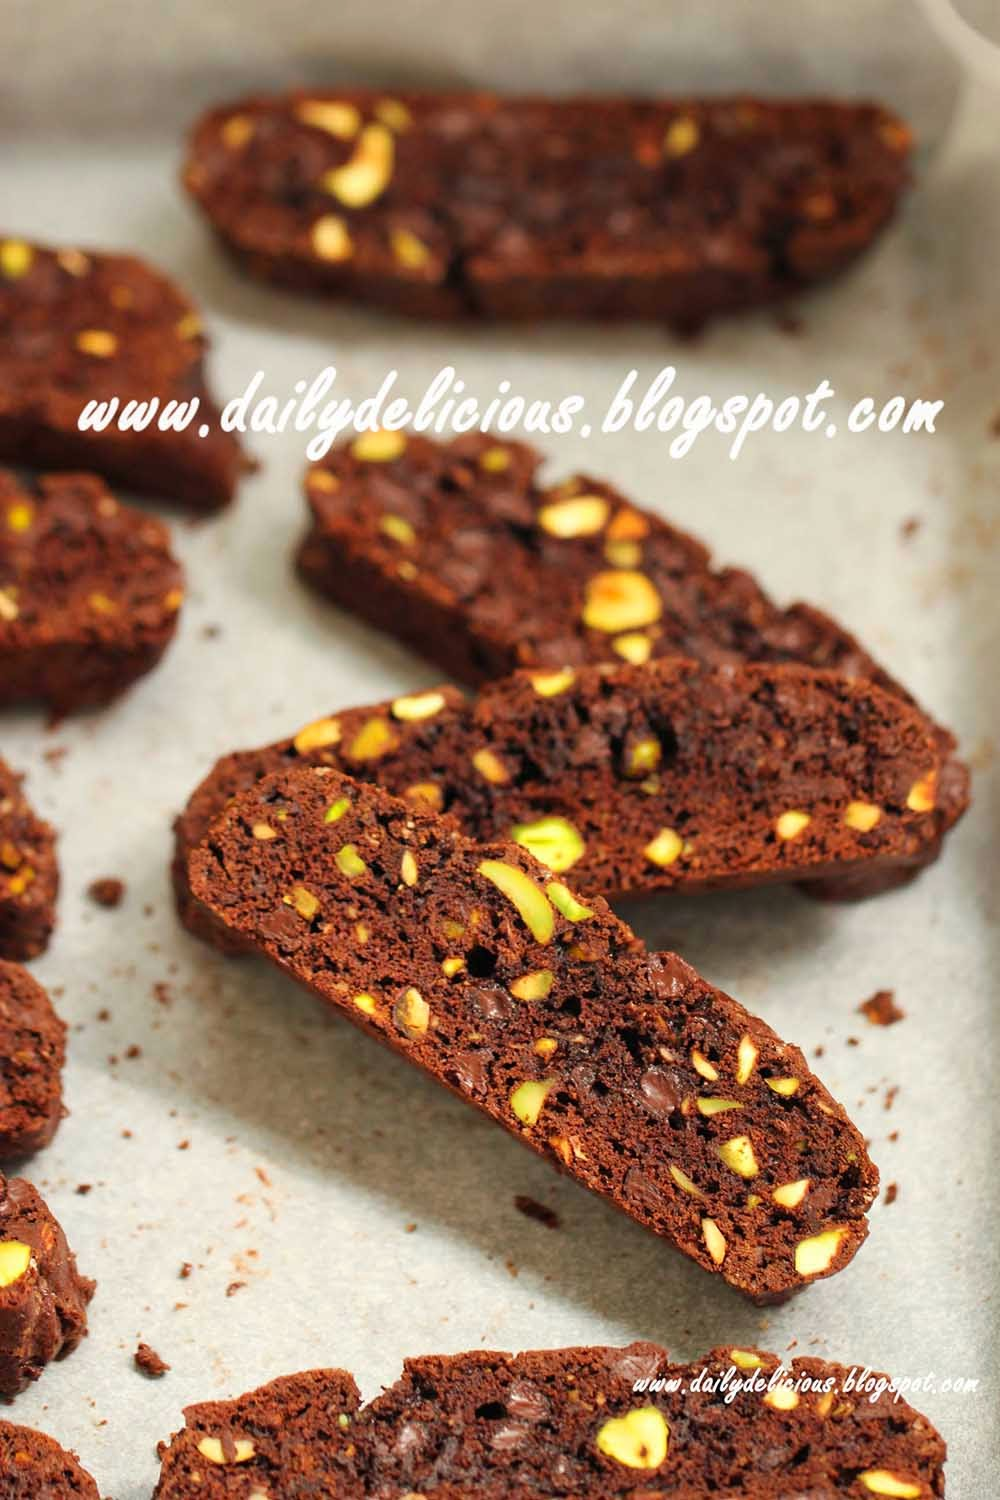 100g chocolate chips or dark chocolate chopped 65g pistachio chopped ...